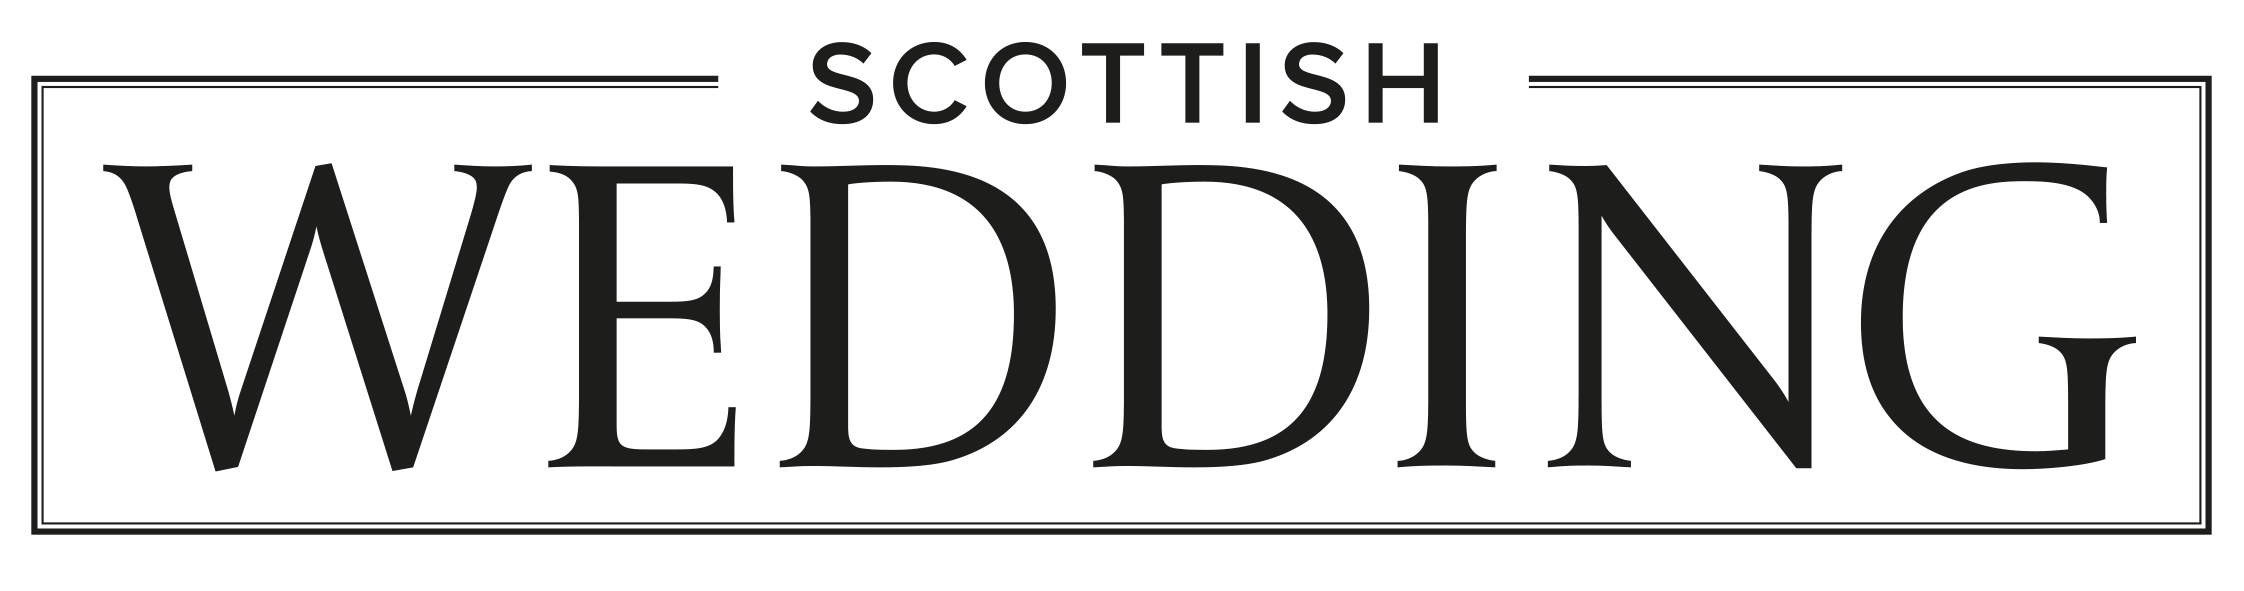 Scottish Wedding logo